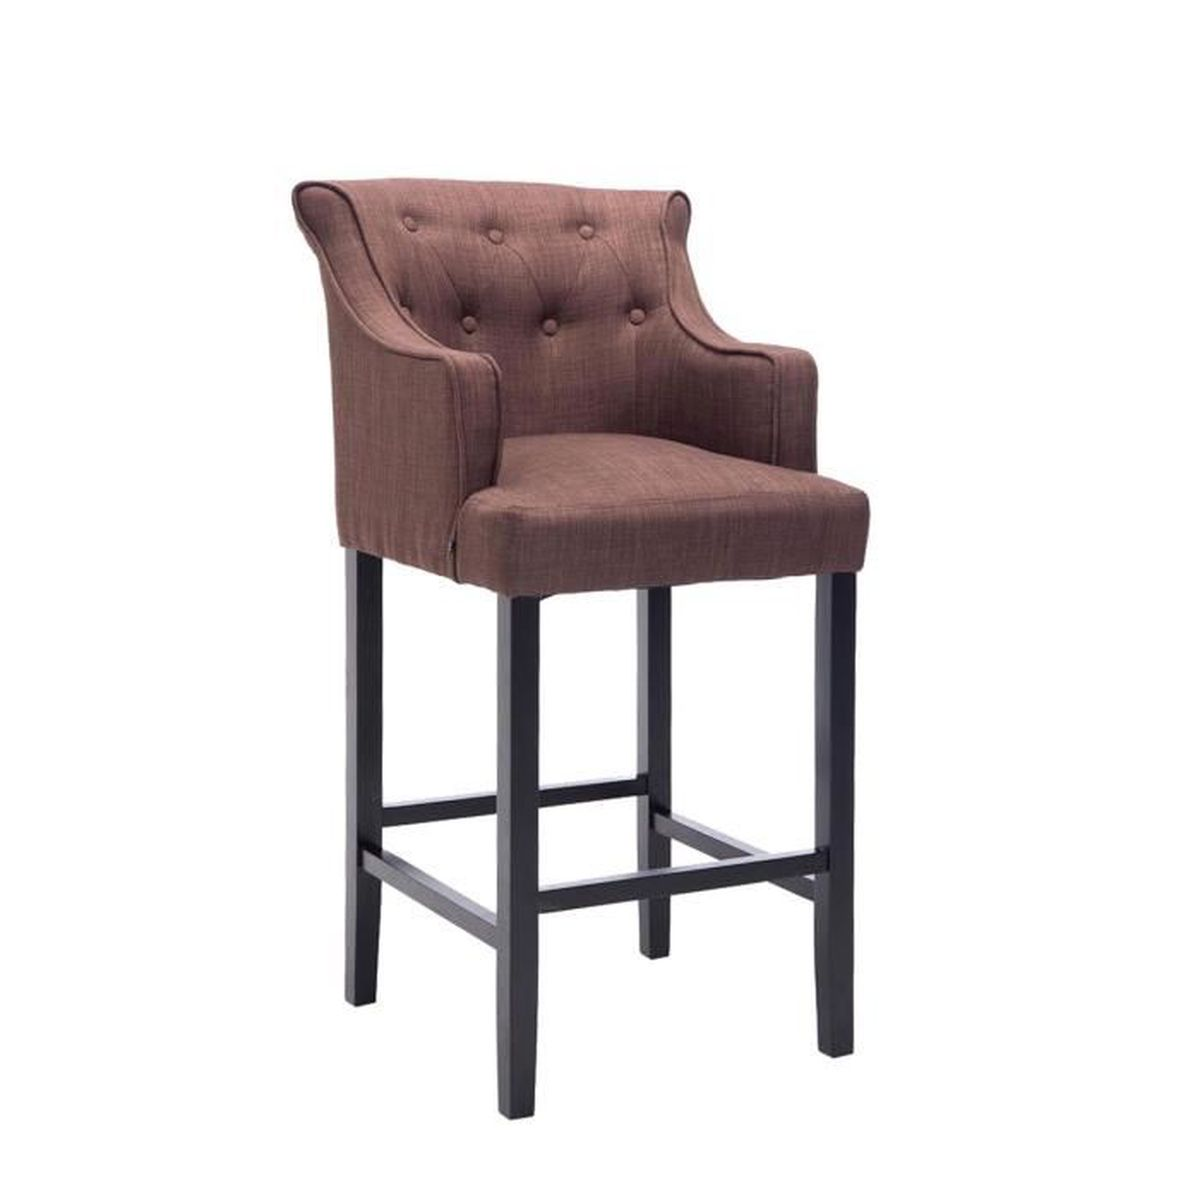 tabouret de bar en bois noir avec si ge en tissu coloris marron 114 x 63 x 60 cm achat. Black Bedroom Furniture Sets. Home Design Ideas